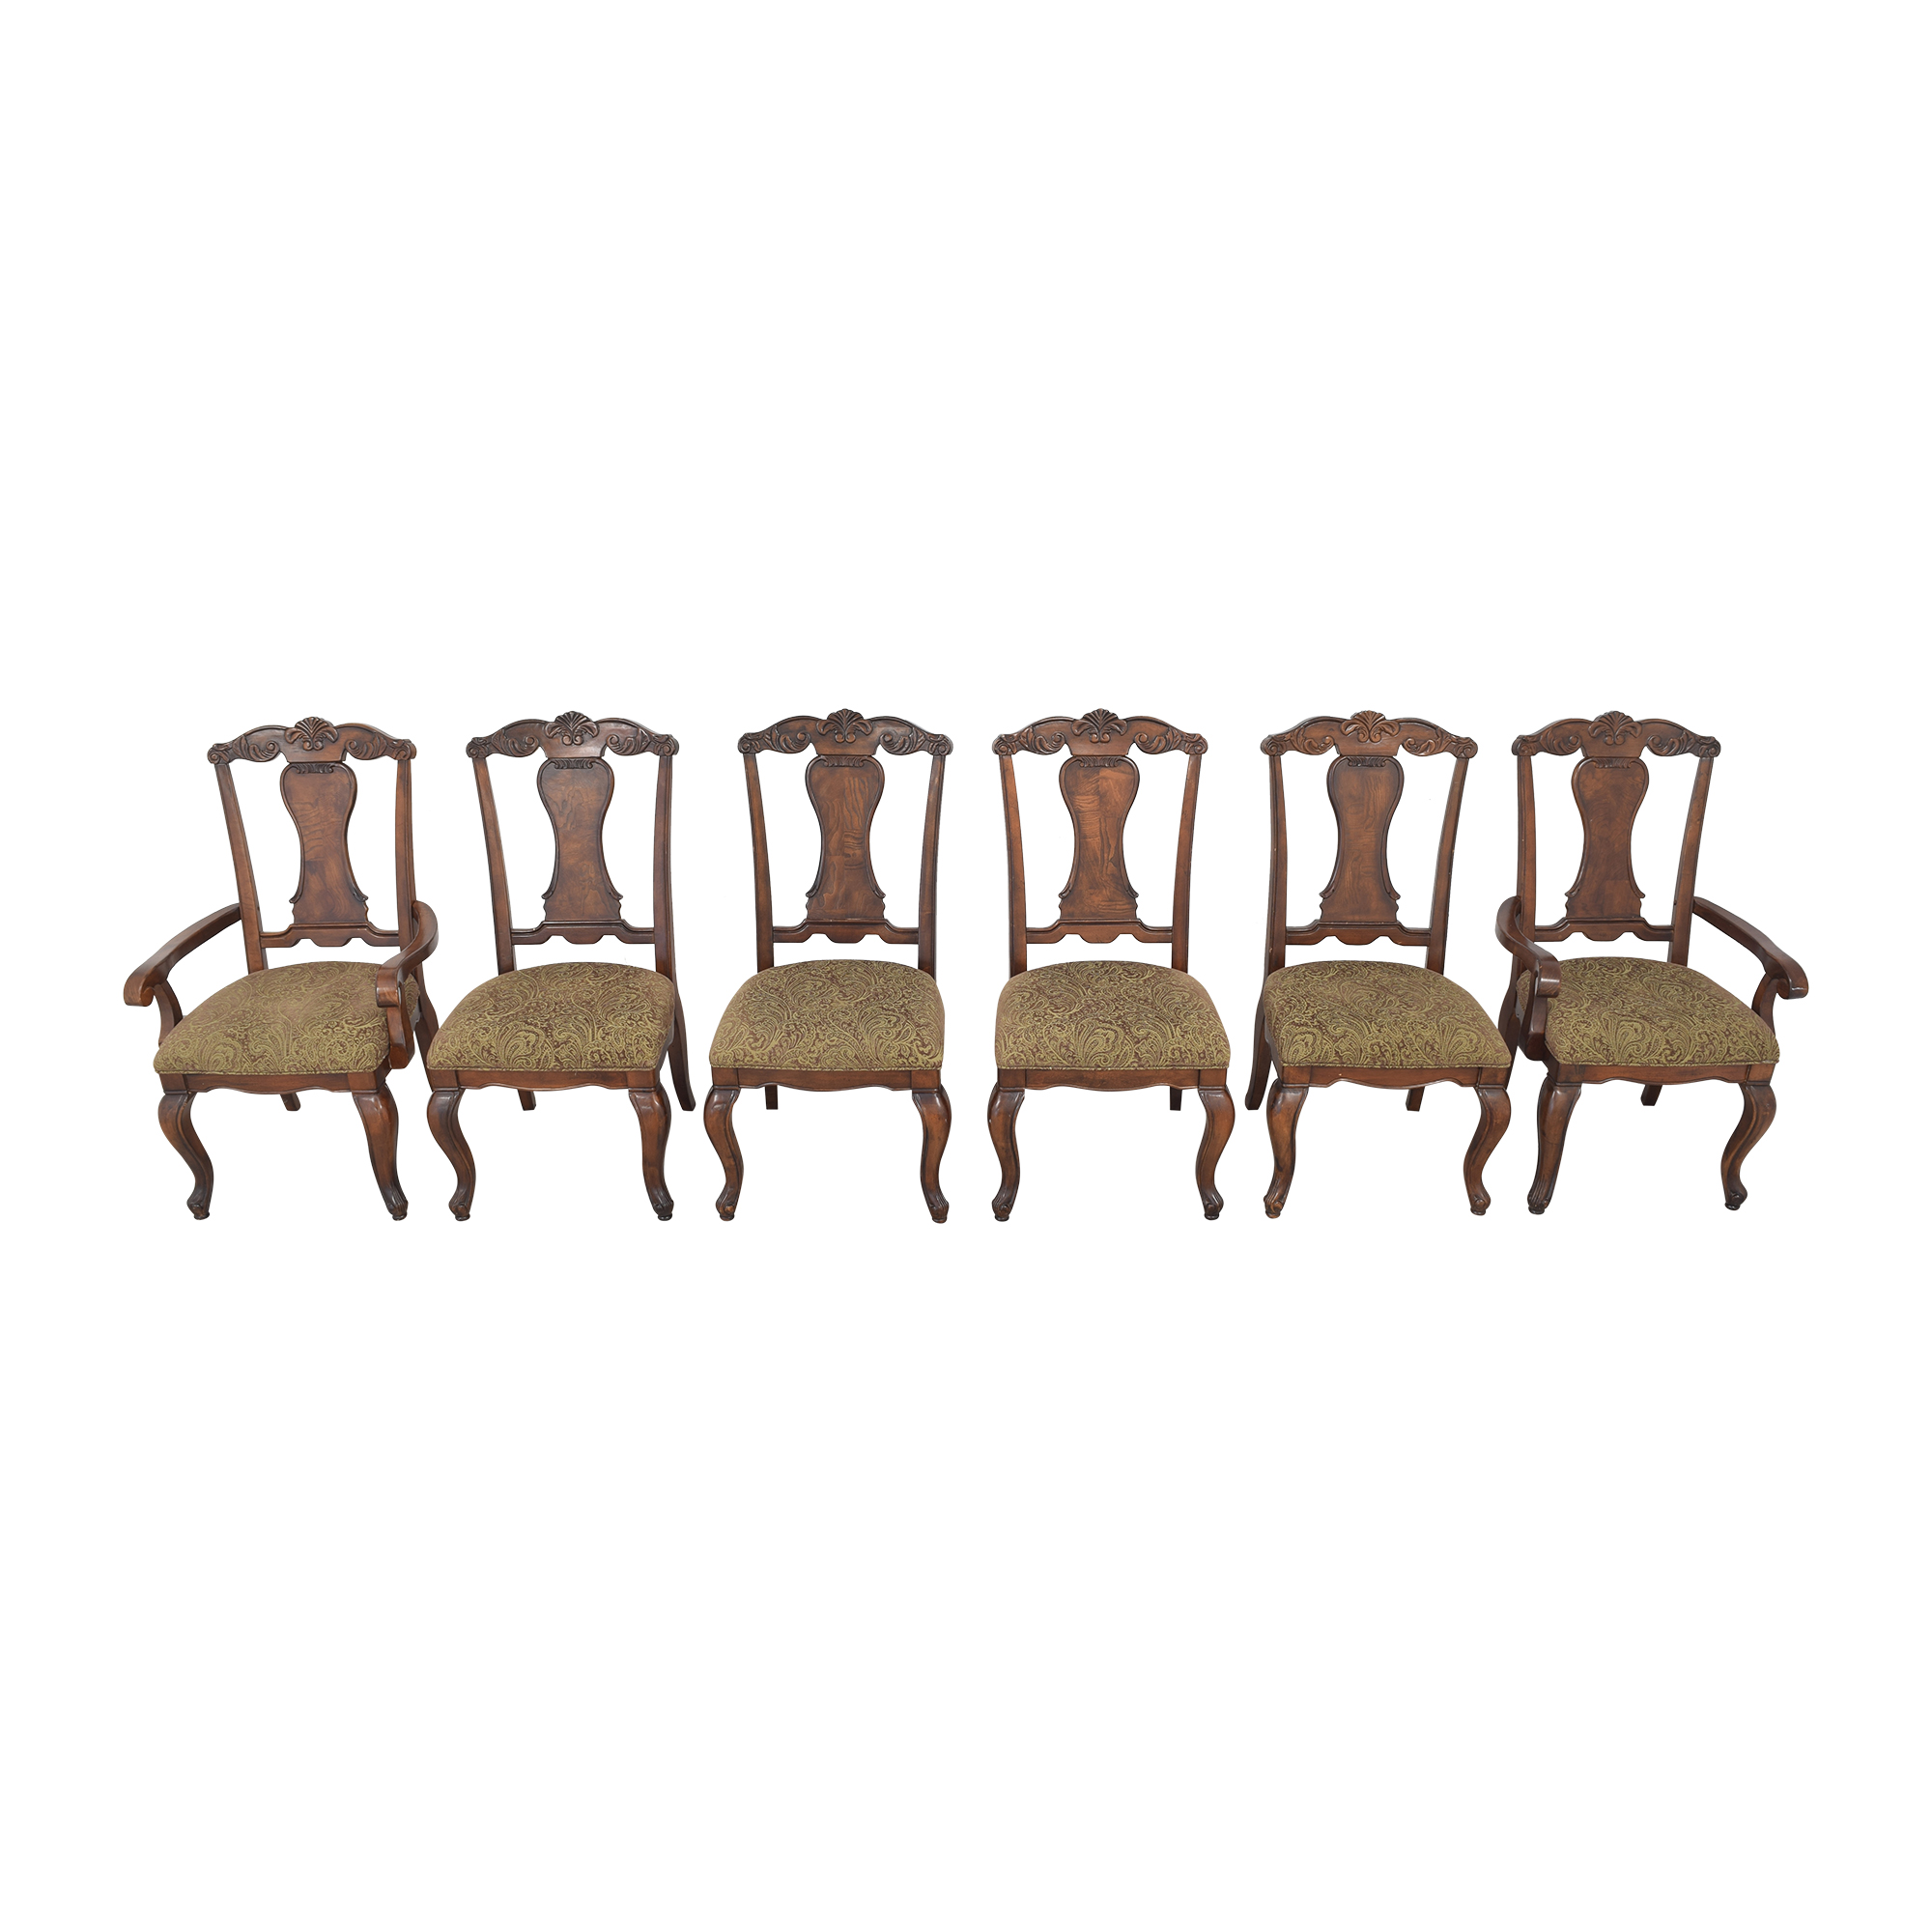 Raymour & Flanigan Carved Dining Chairs Raymour & Flanigan